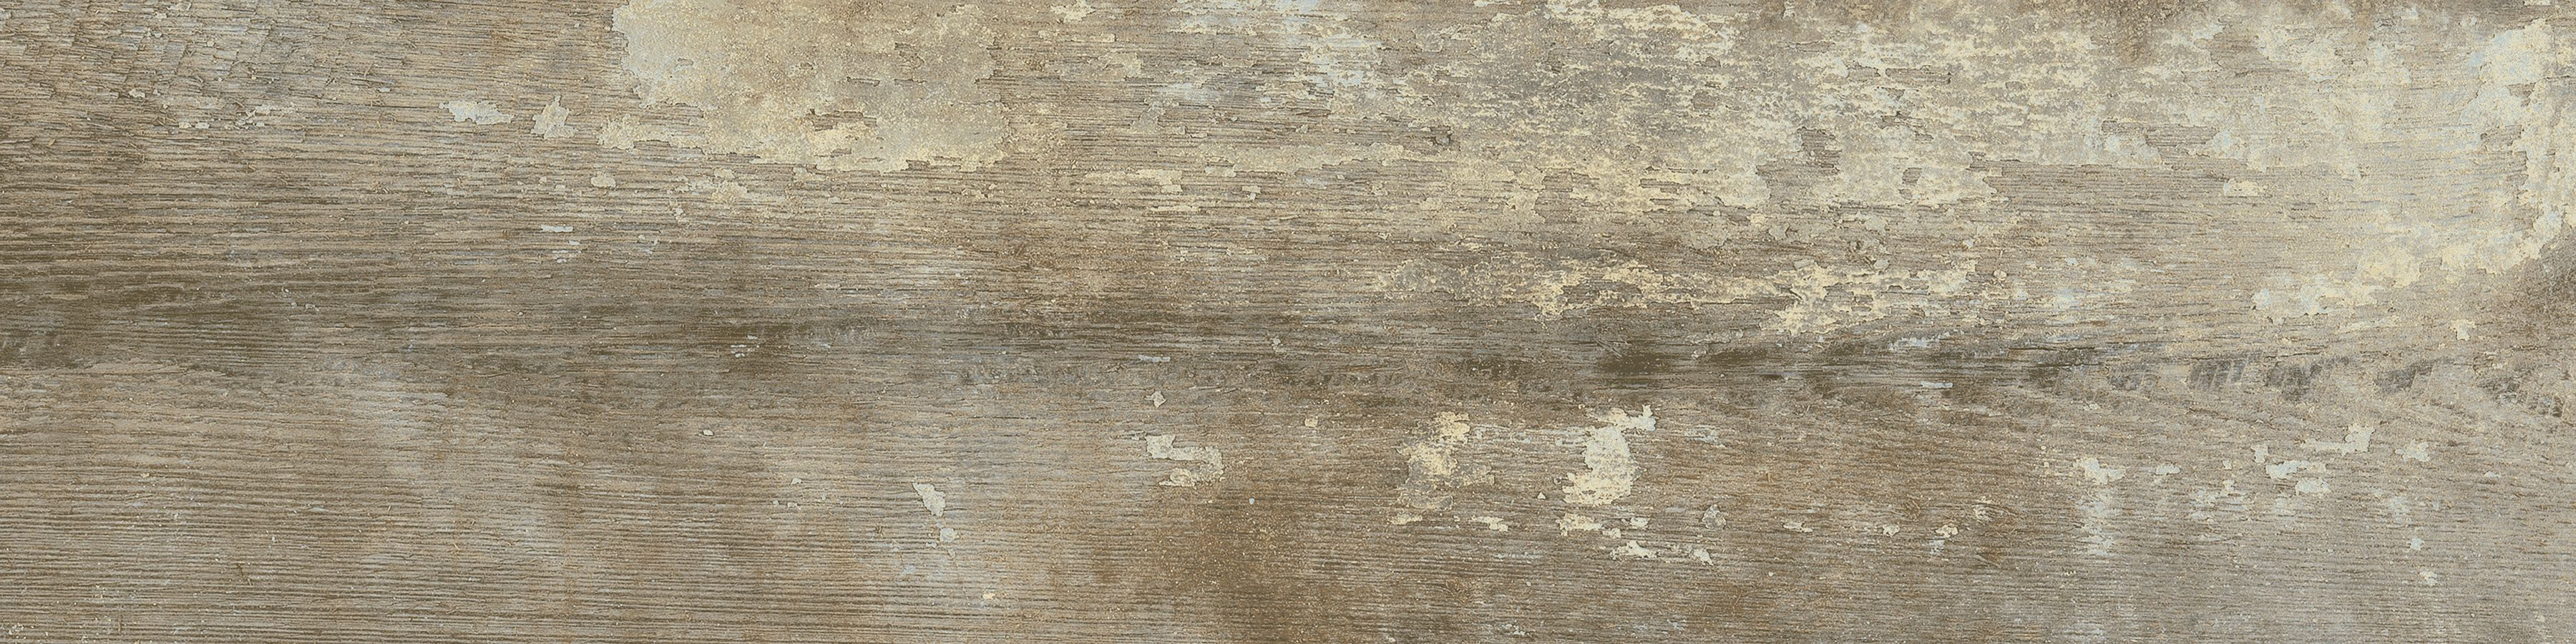 #Farmhouse #HighDefinition #porcelain #plank #tile, available in #6x24 - shown in #Oxide | #MidAmericaTile #WoodLook #InnovativeLooks #LooksLikeWood #WoodStyle